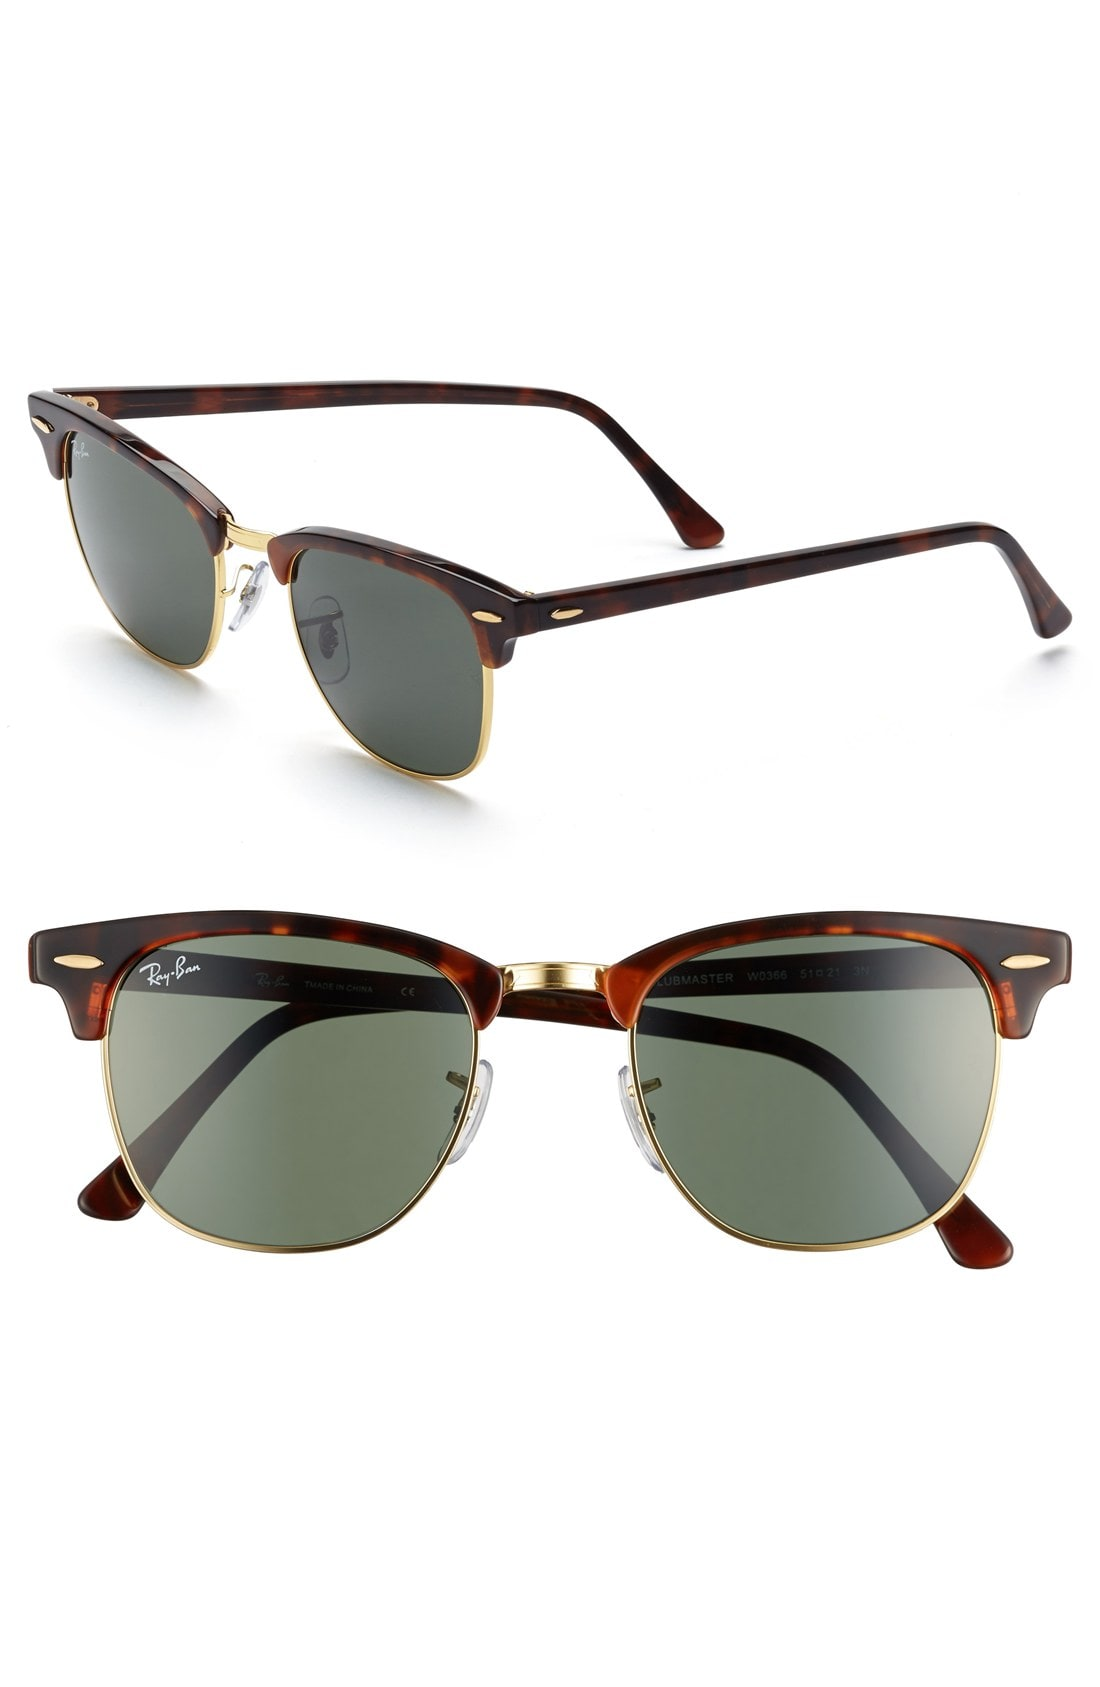 Men's Sunglasses & Eye Glasses | Nordstrom